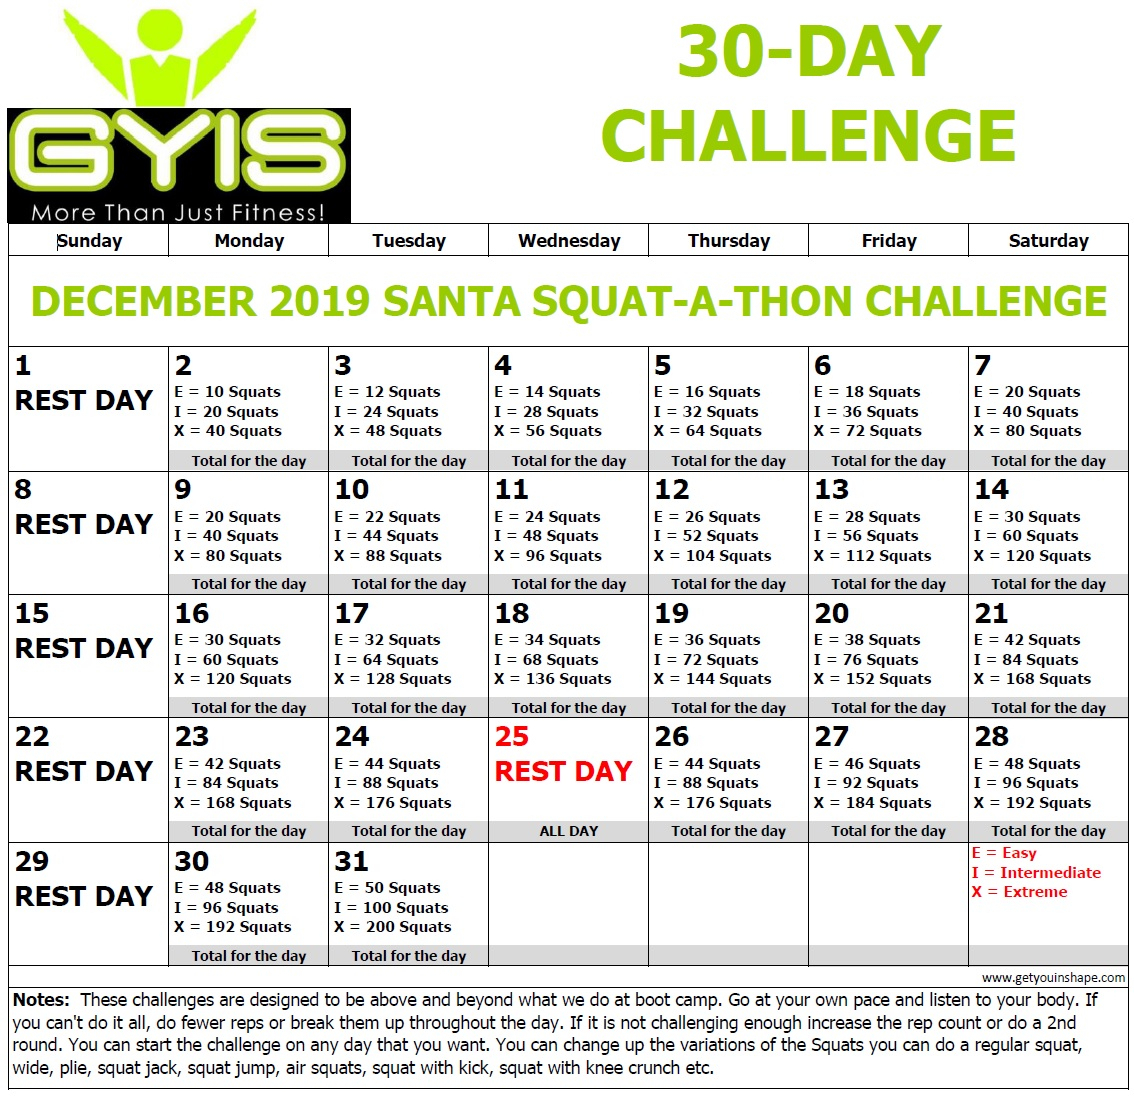 30 Day Santa Squat A Thon Challenge Dec 19